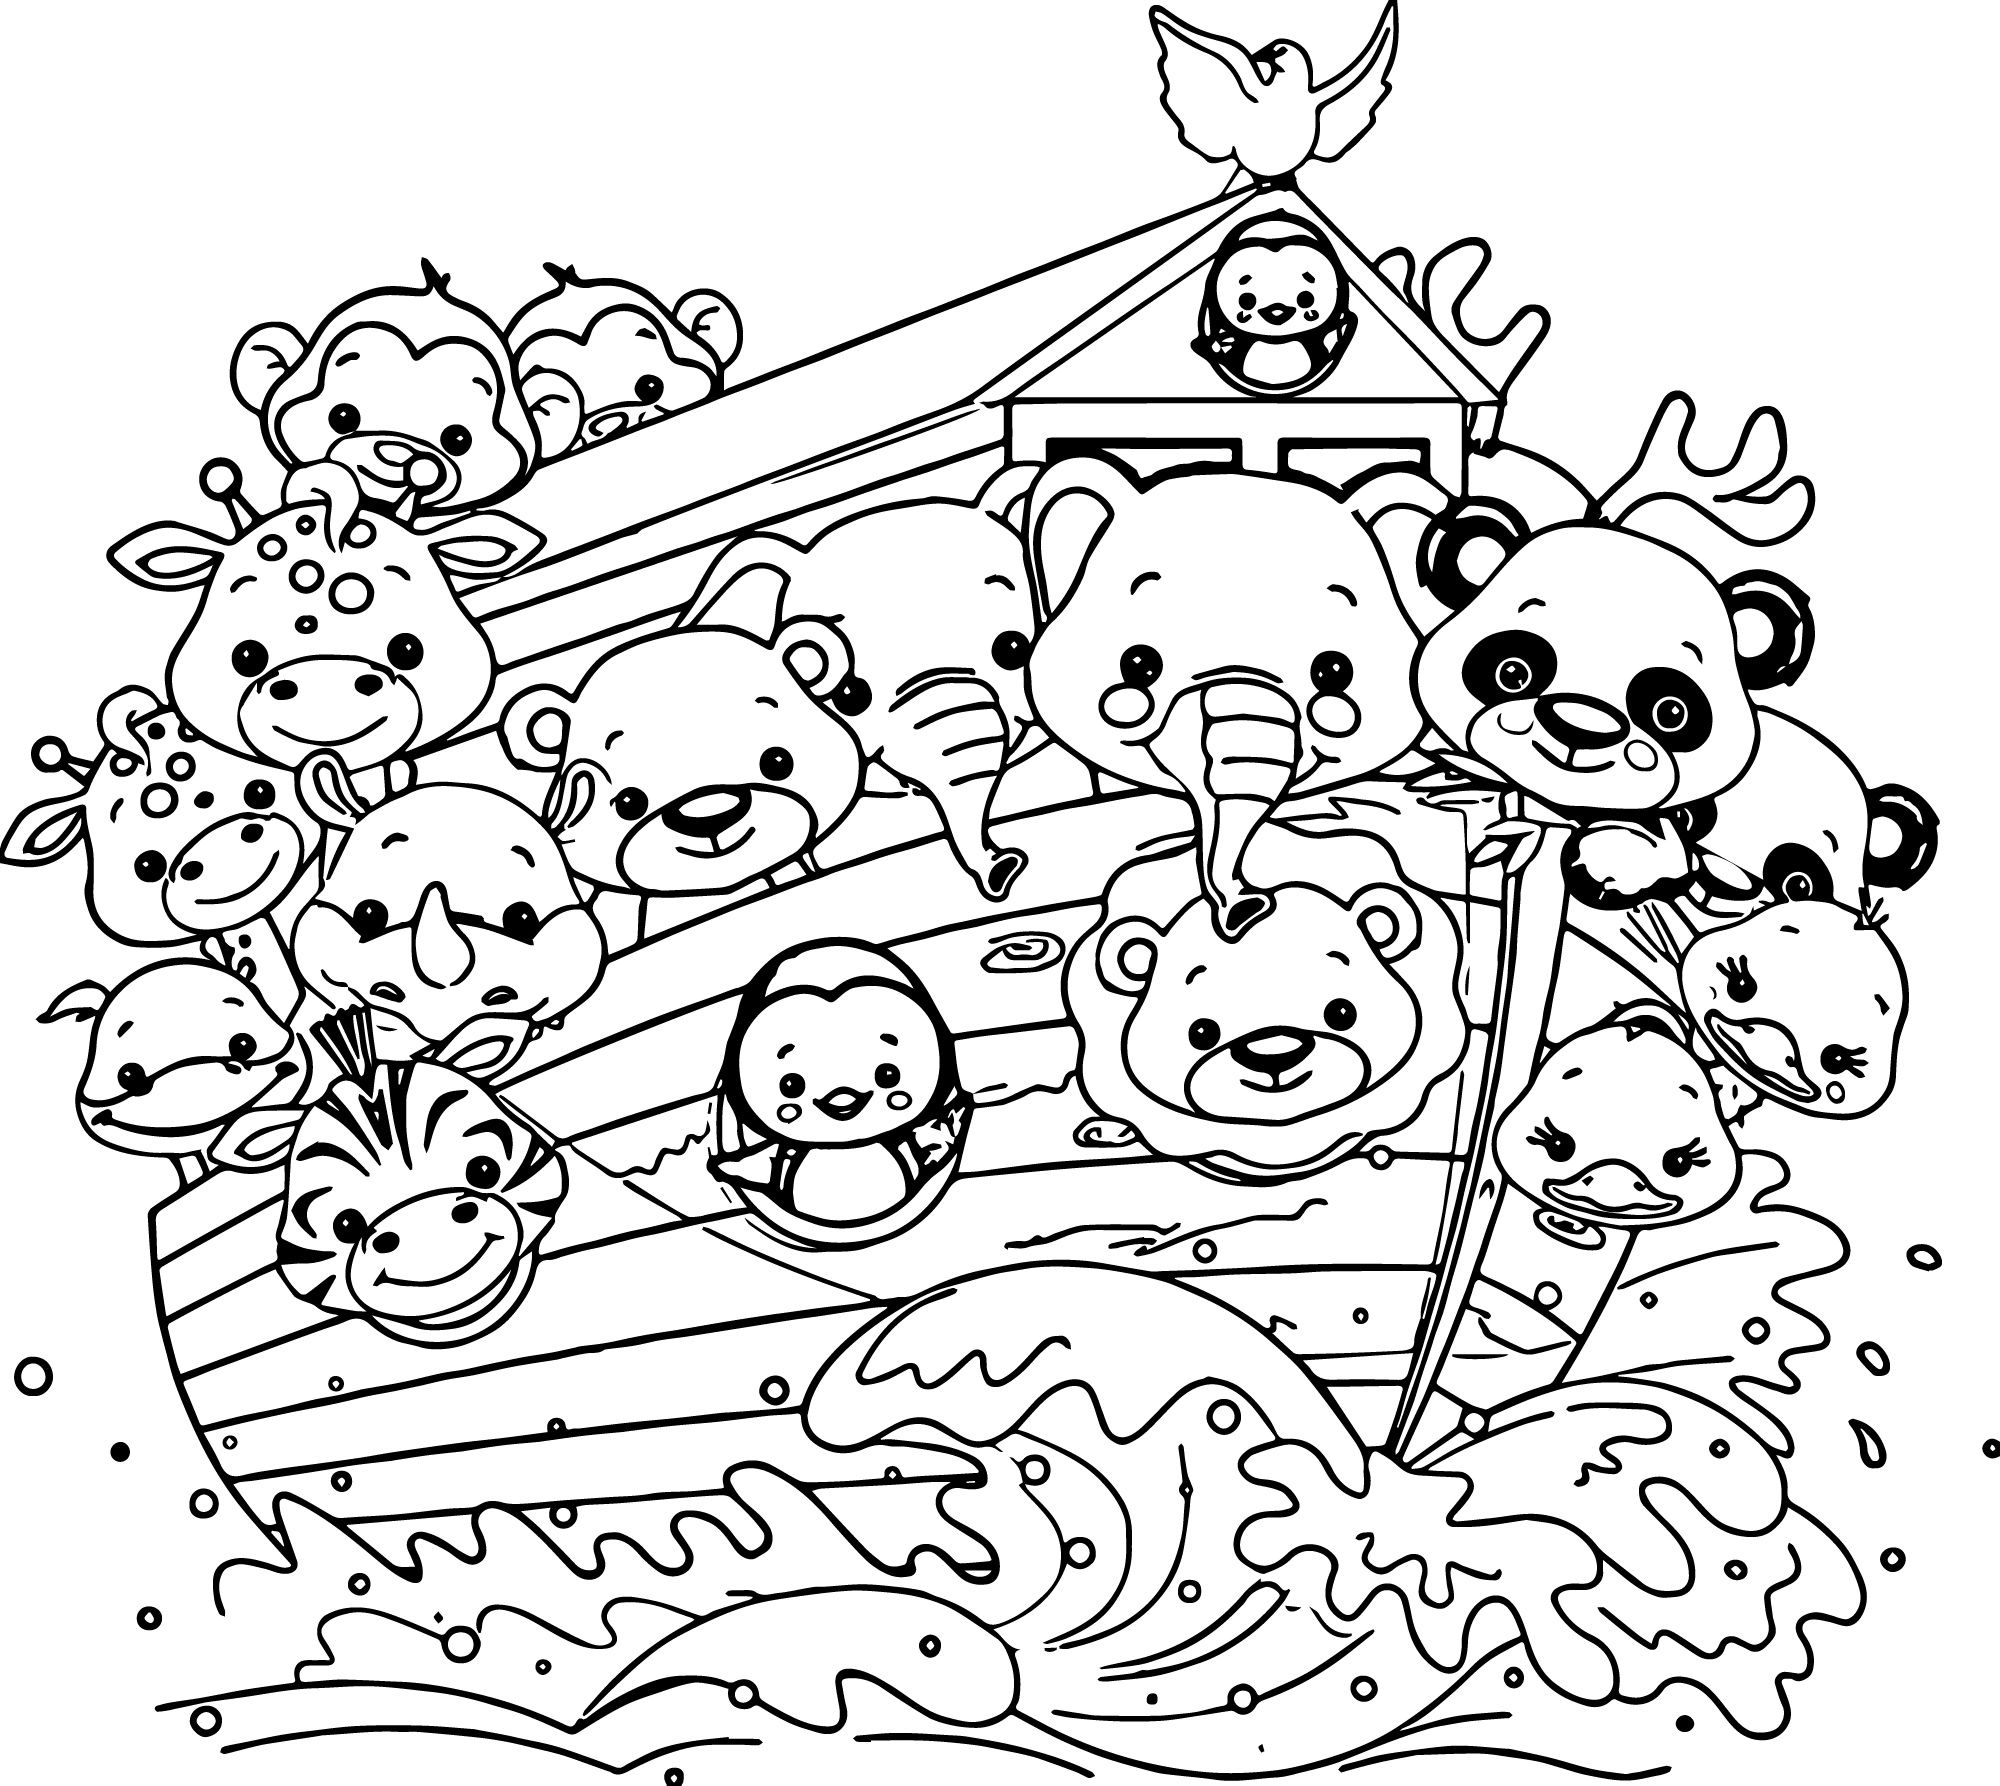 coloring page noahs ark noah png black and white transparent noah black and white noahs coloring ark page